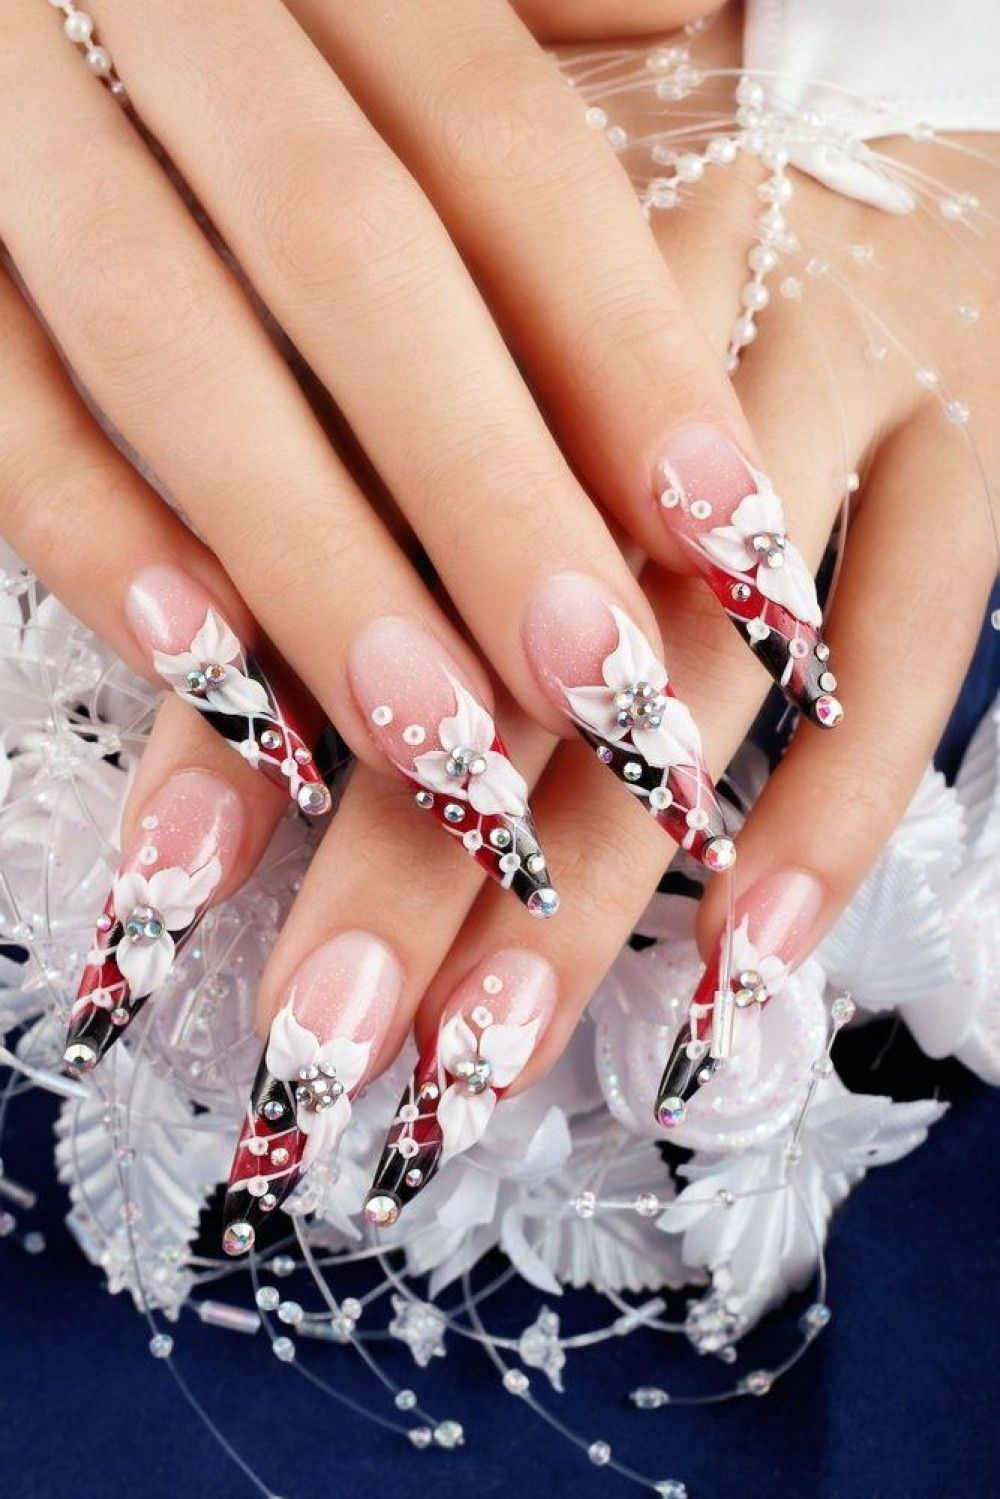 Beautifull nails with diamonds and flowers